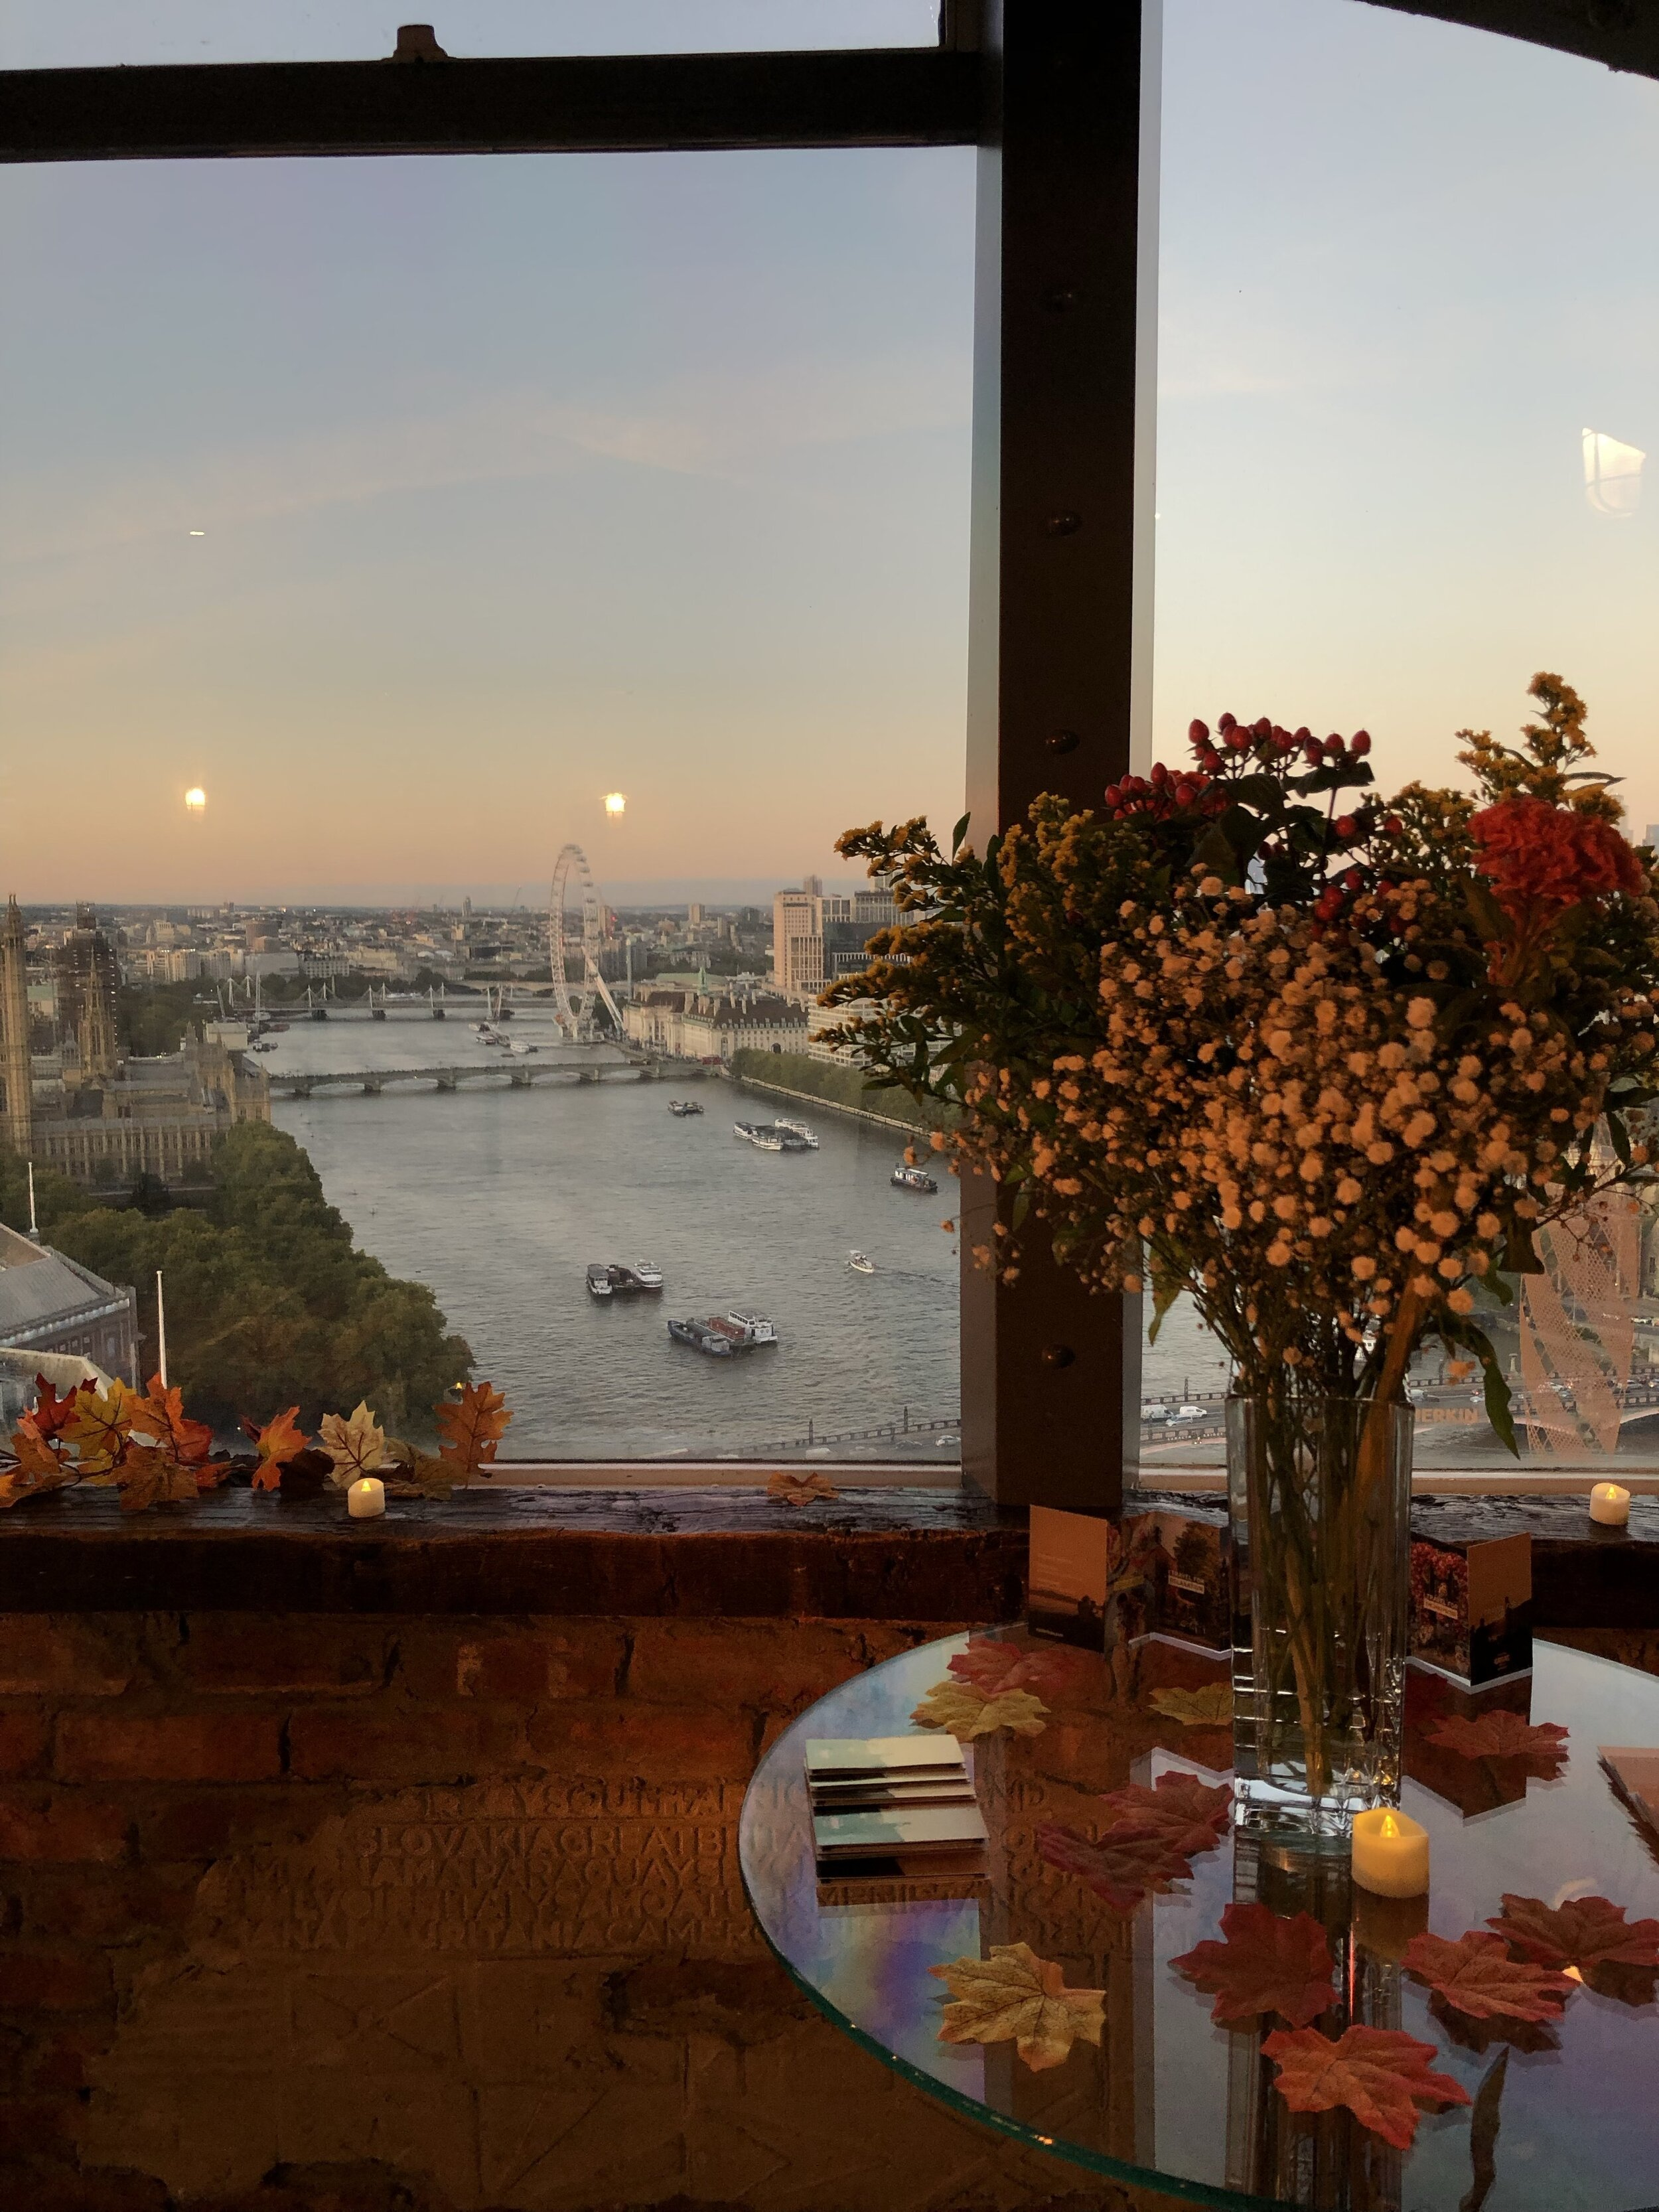 The beautiful view from Millbank Tower, our venue for the day